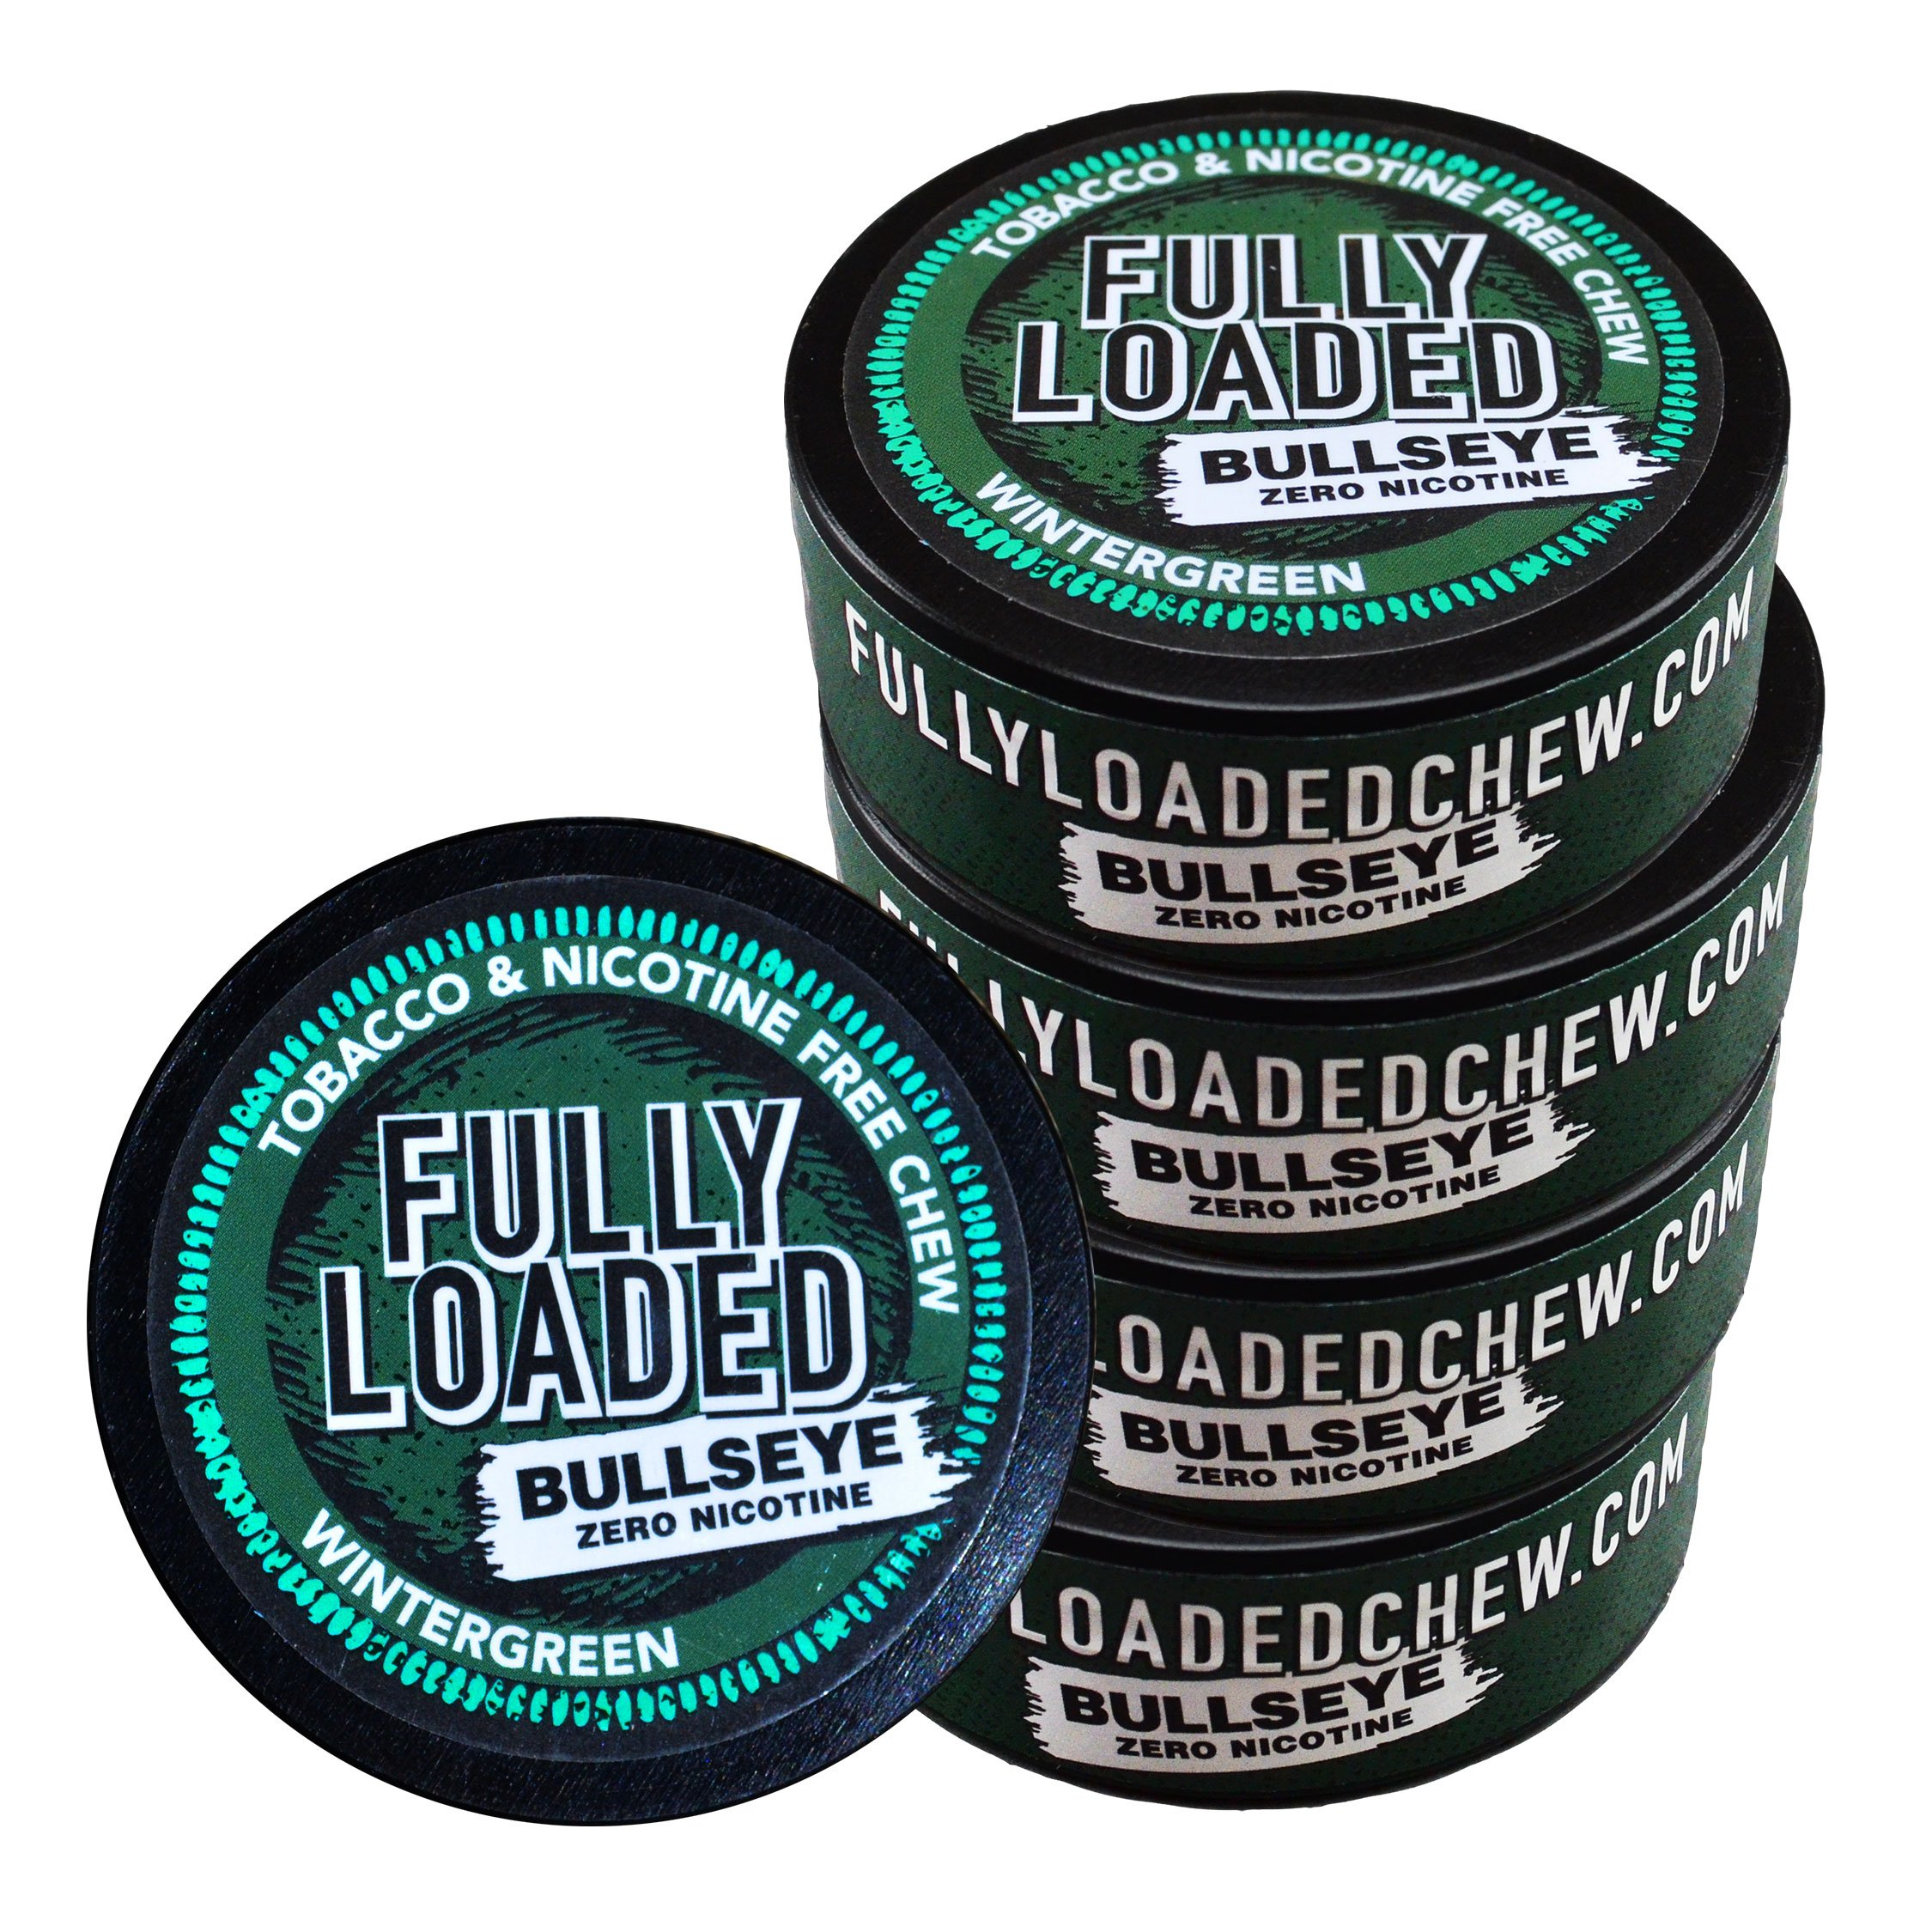 Fully Loaded Chew - 5 Pack - Tobacco and Nicotine Free Wintergreen Flavored Chew by Fully Loaded Chew